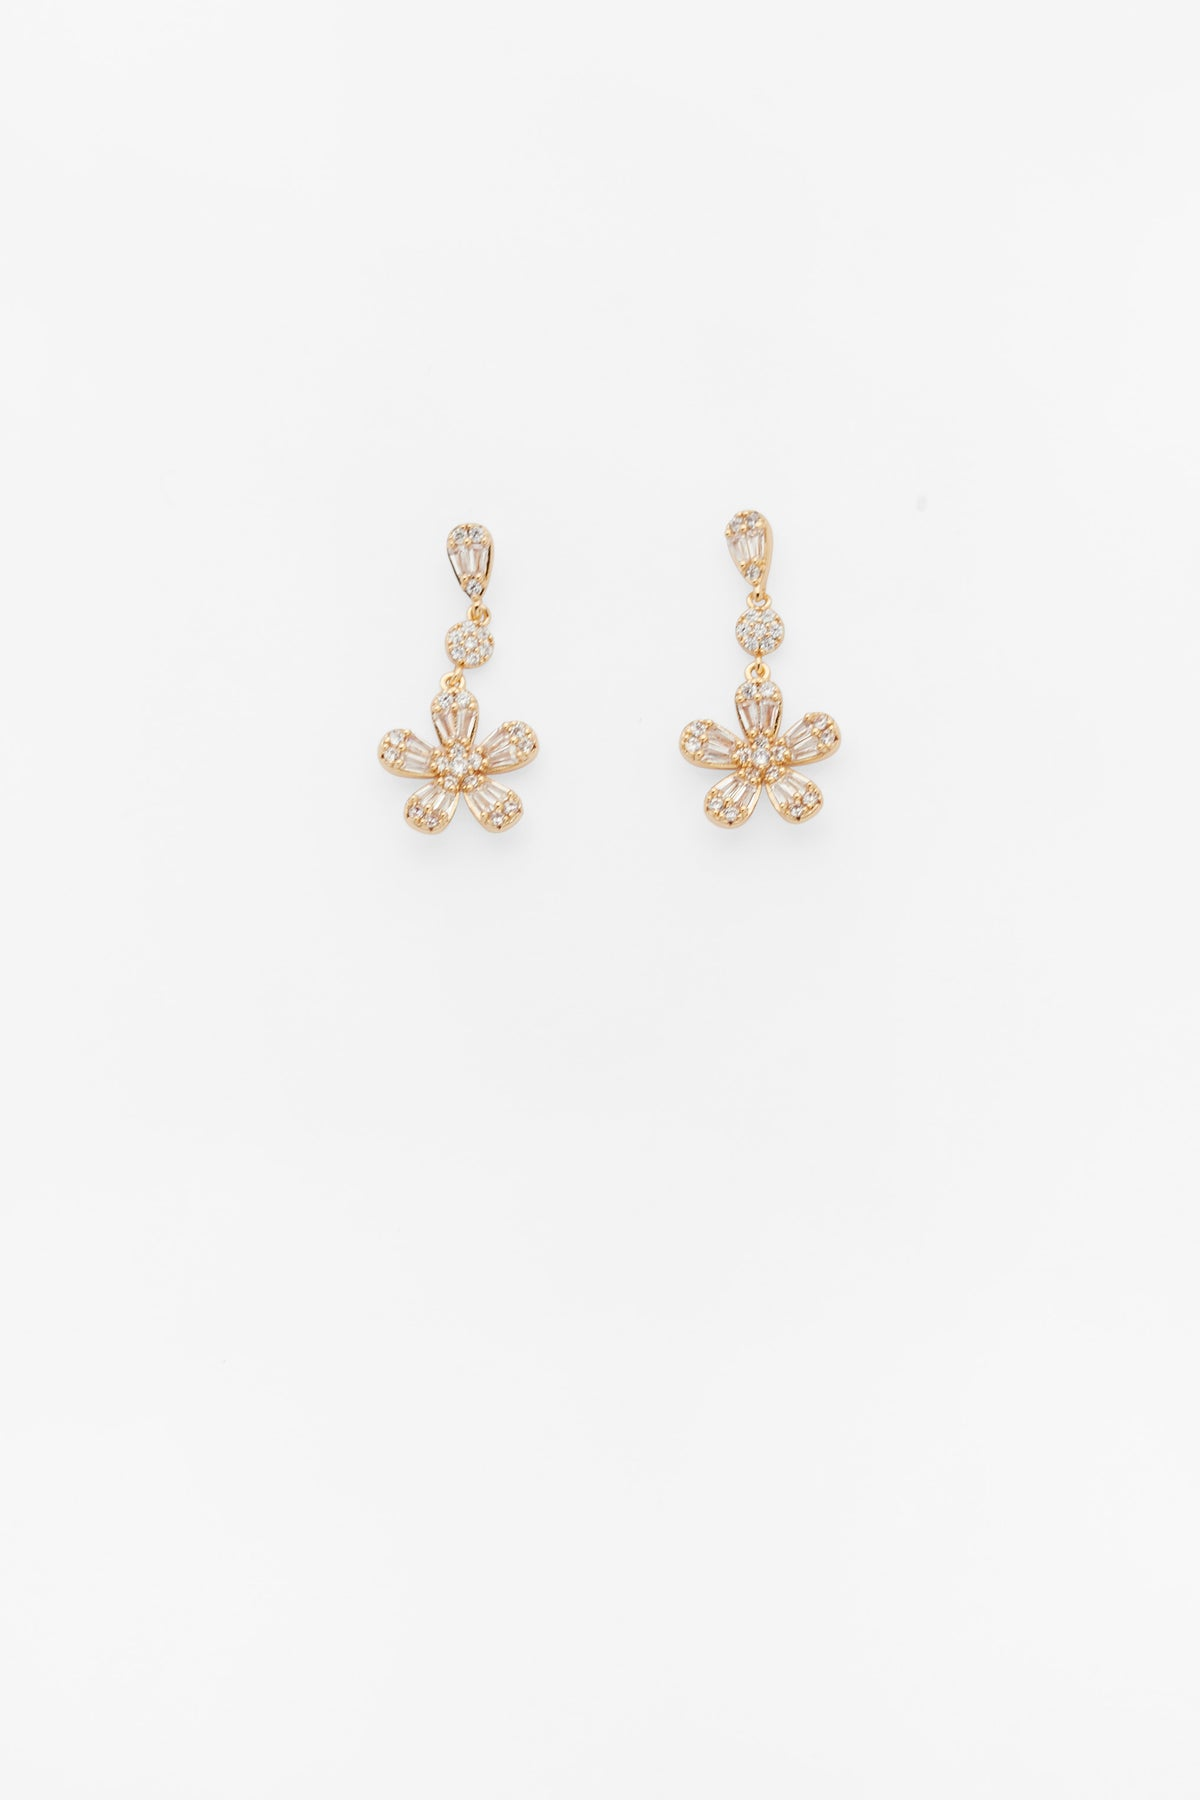 Christelle Earrings